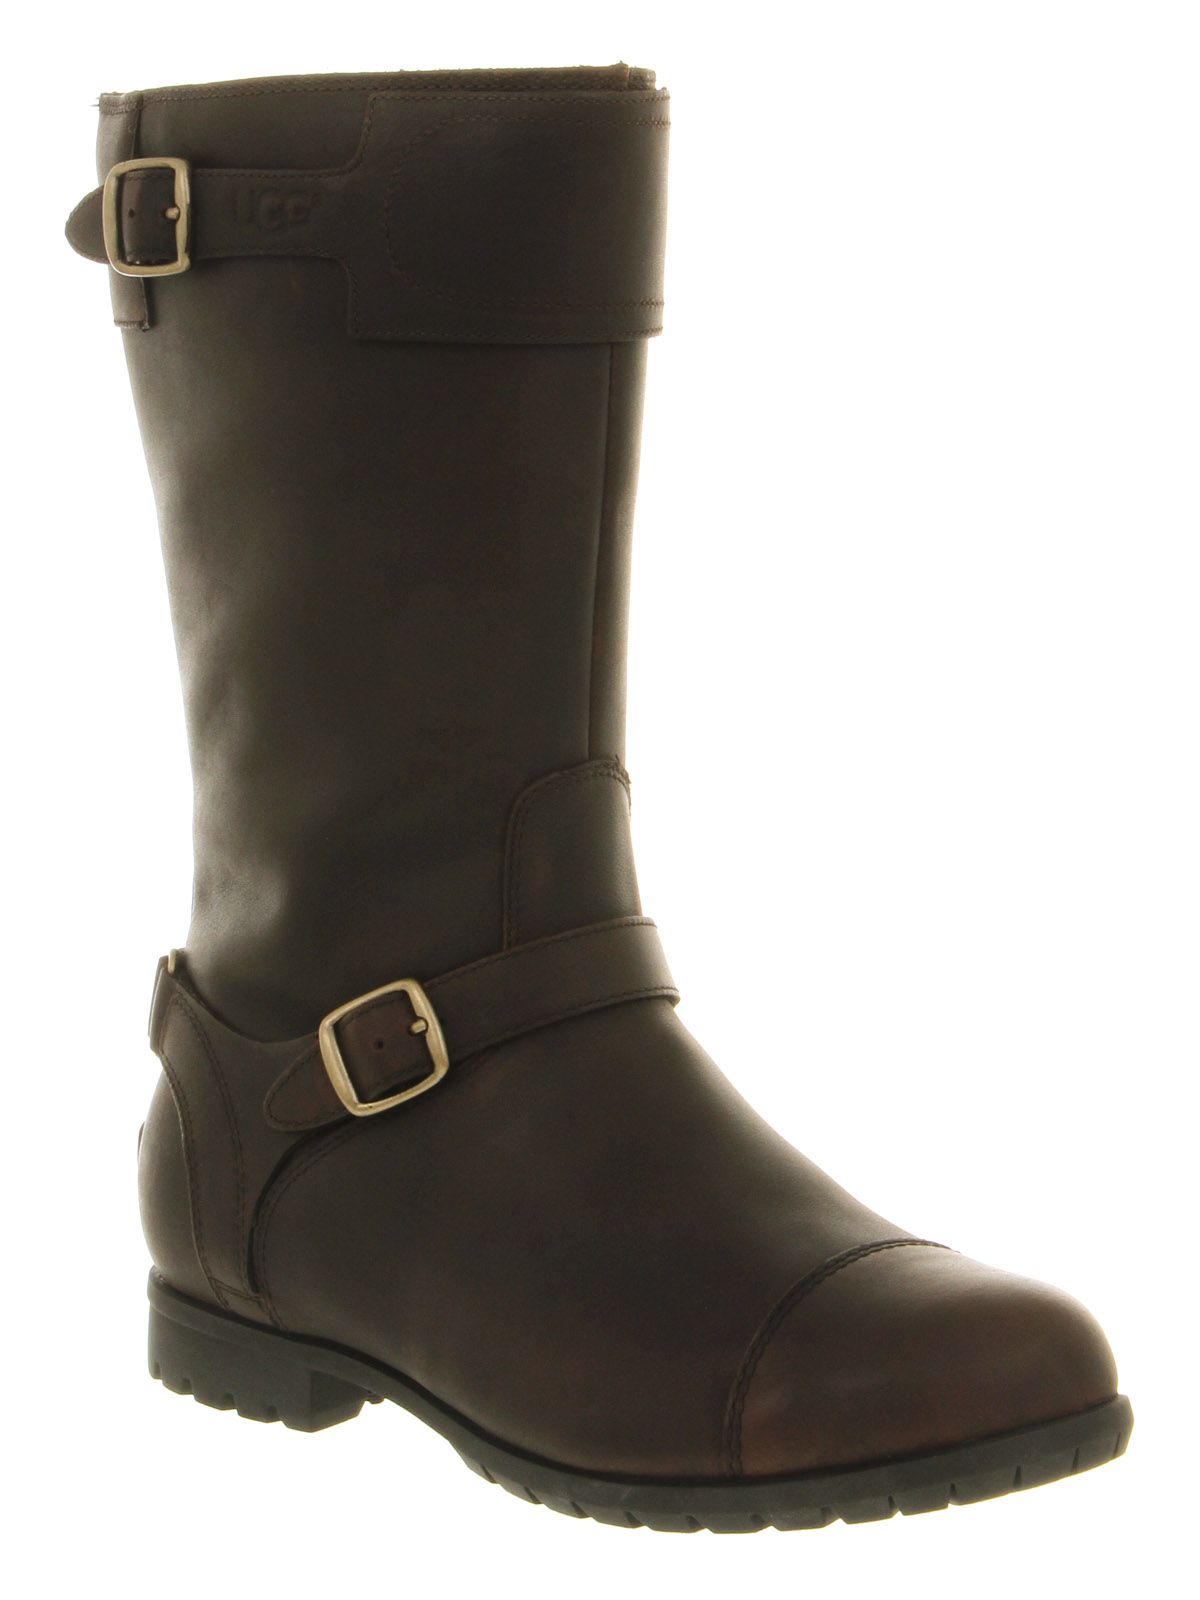 ugg gershwin classic calf boot in brown chocolate lyst